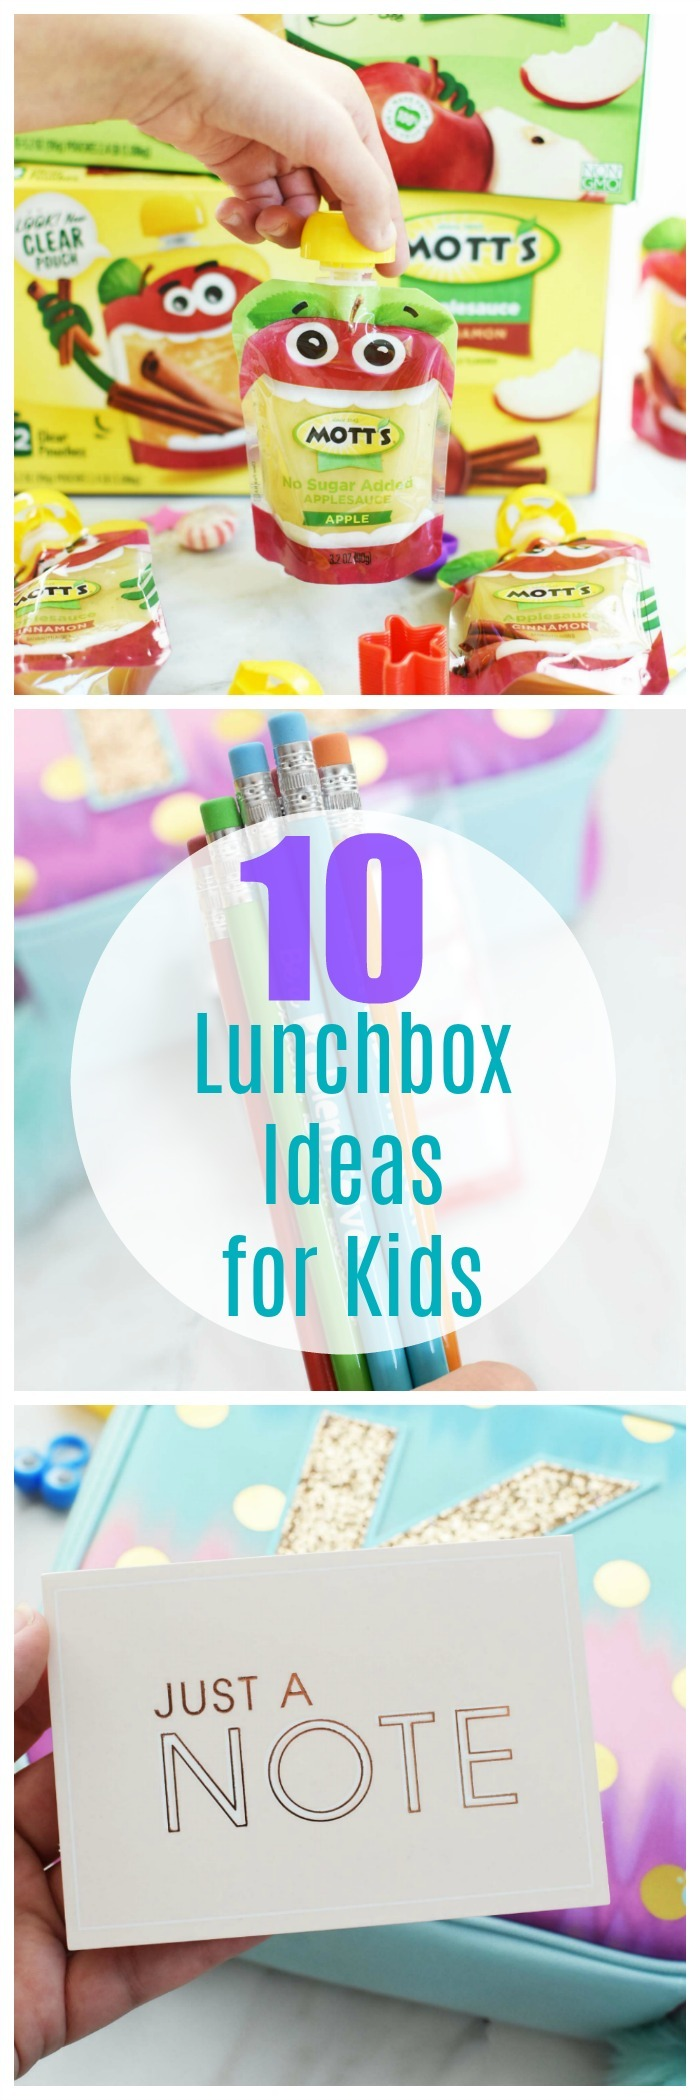 10 Lunchbox Ideas that are Fun for Kids